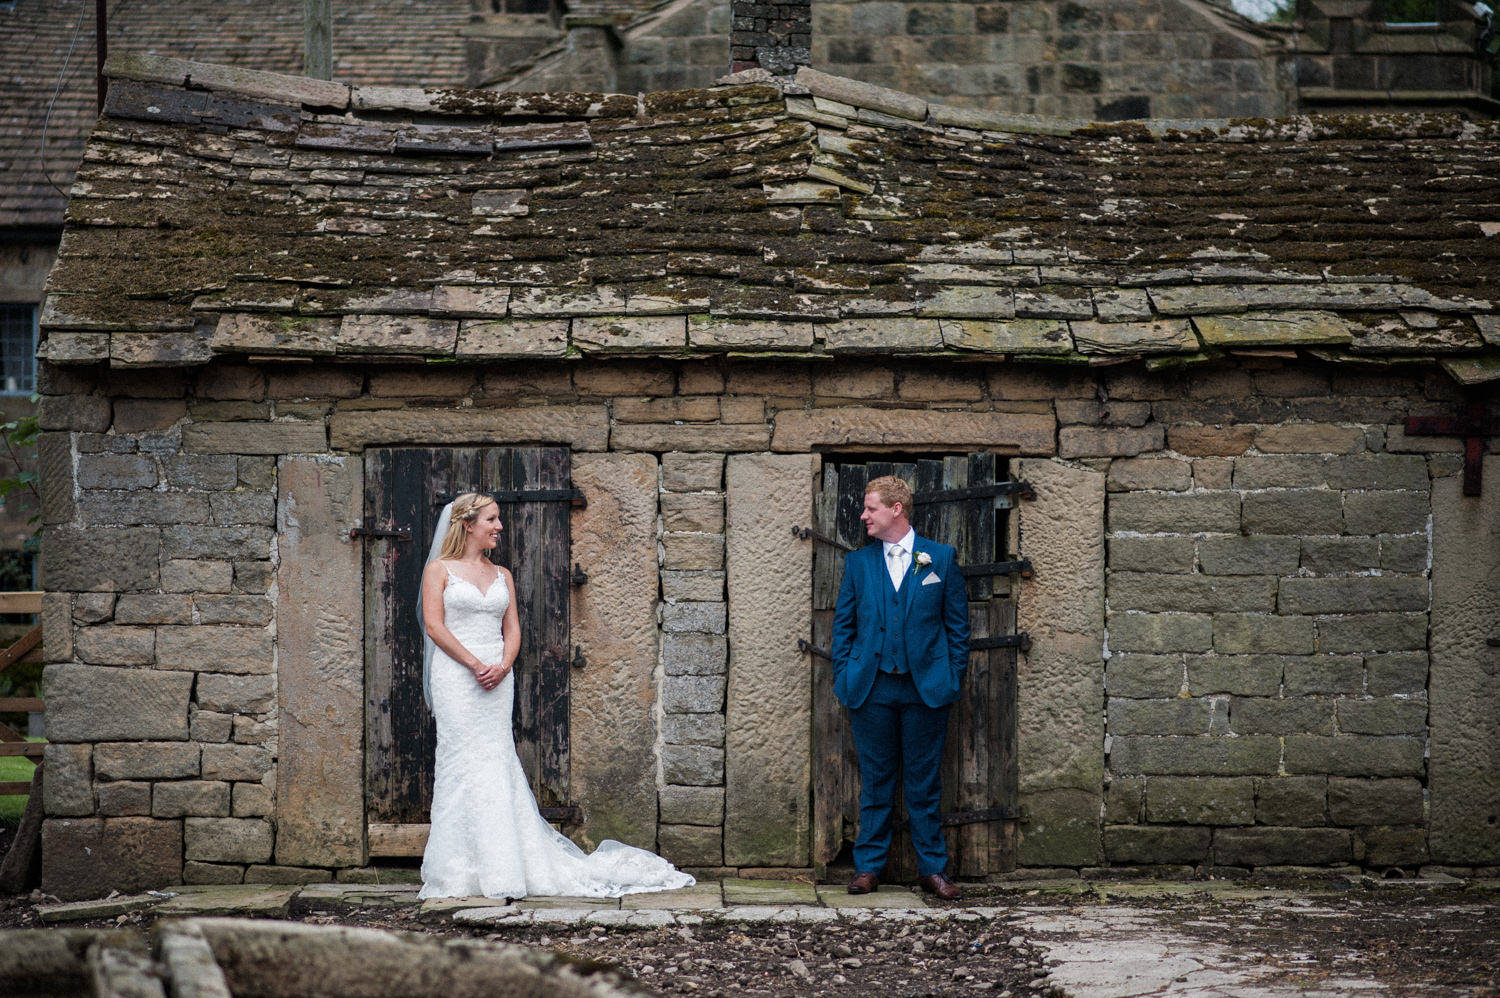 peak-district-wedding-photographer-Amanda-and-will-61.jpg